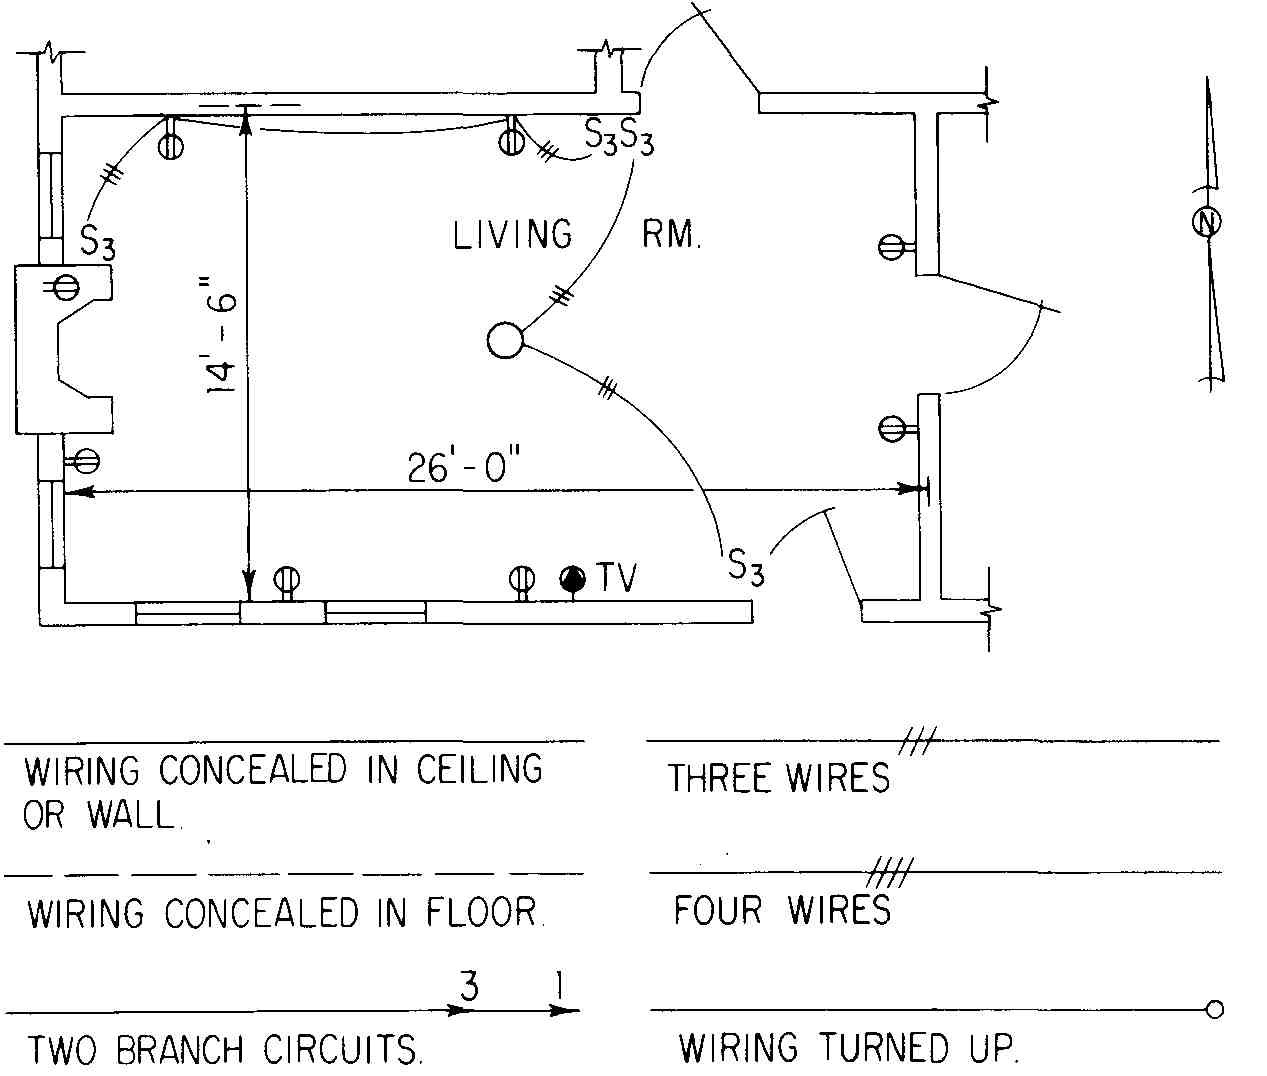 Architectural Wiring Diagram Symbols Circuit Pictorial House Electrical Plan Rh Color Castles Com Software